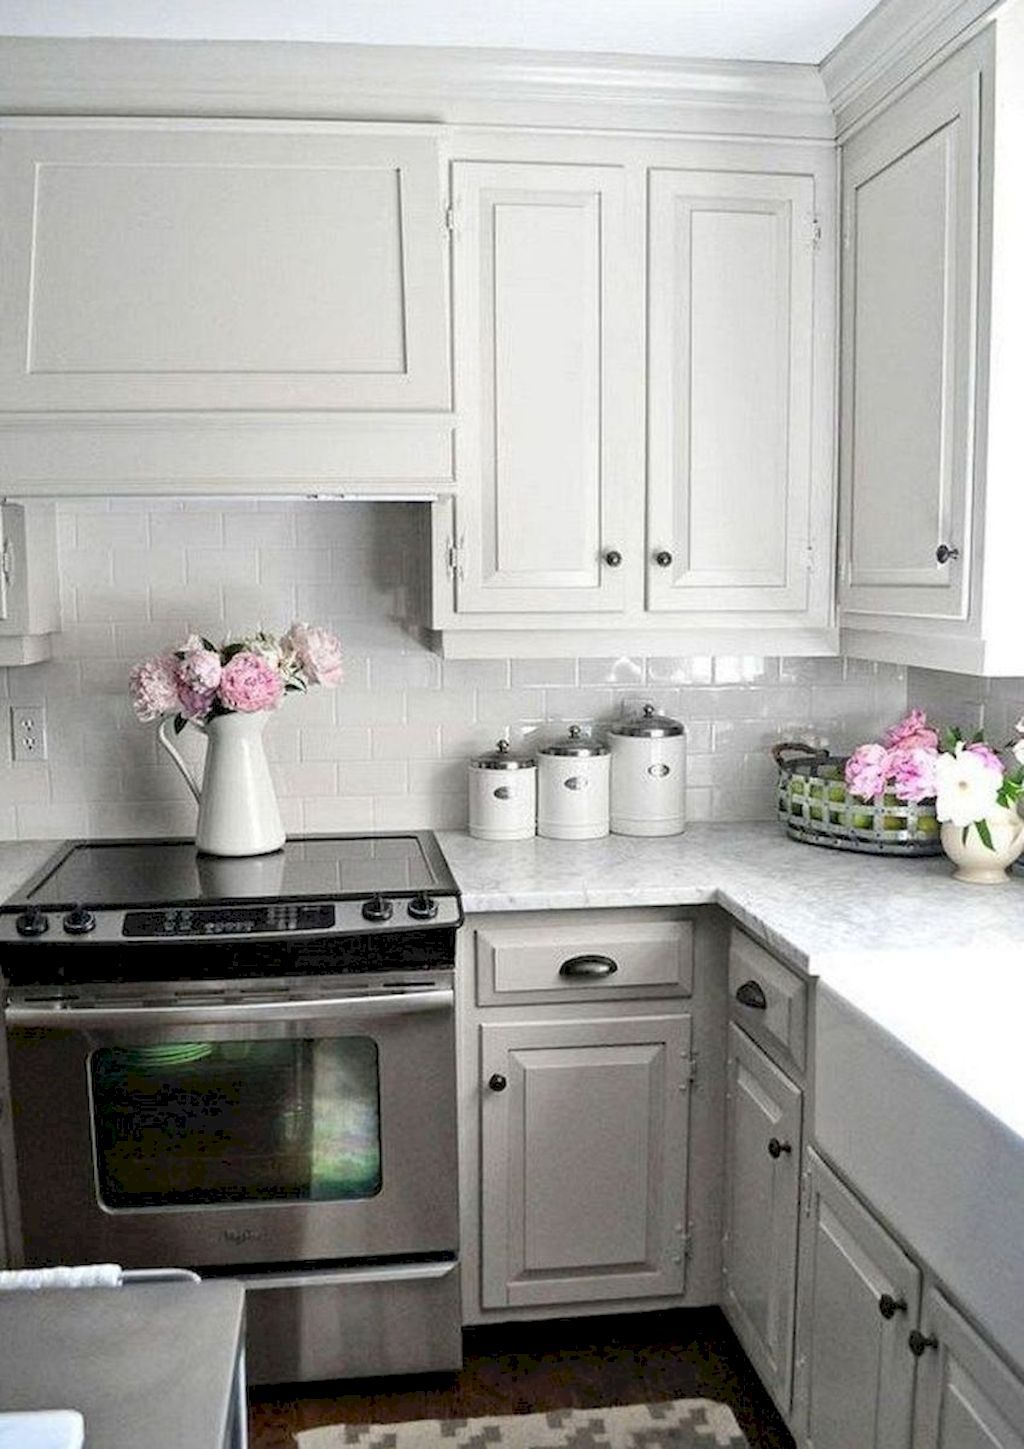 Pin by tammy ant on kitchens in kitchen kitchen cabinets